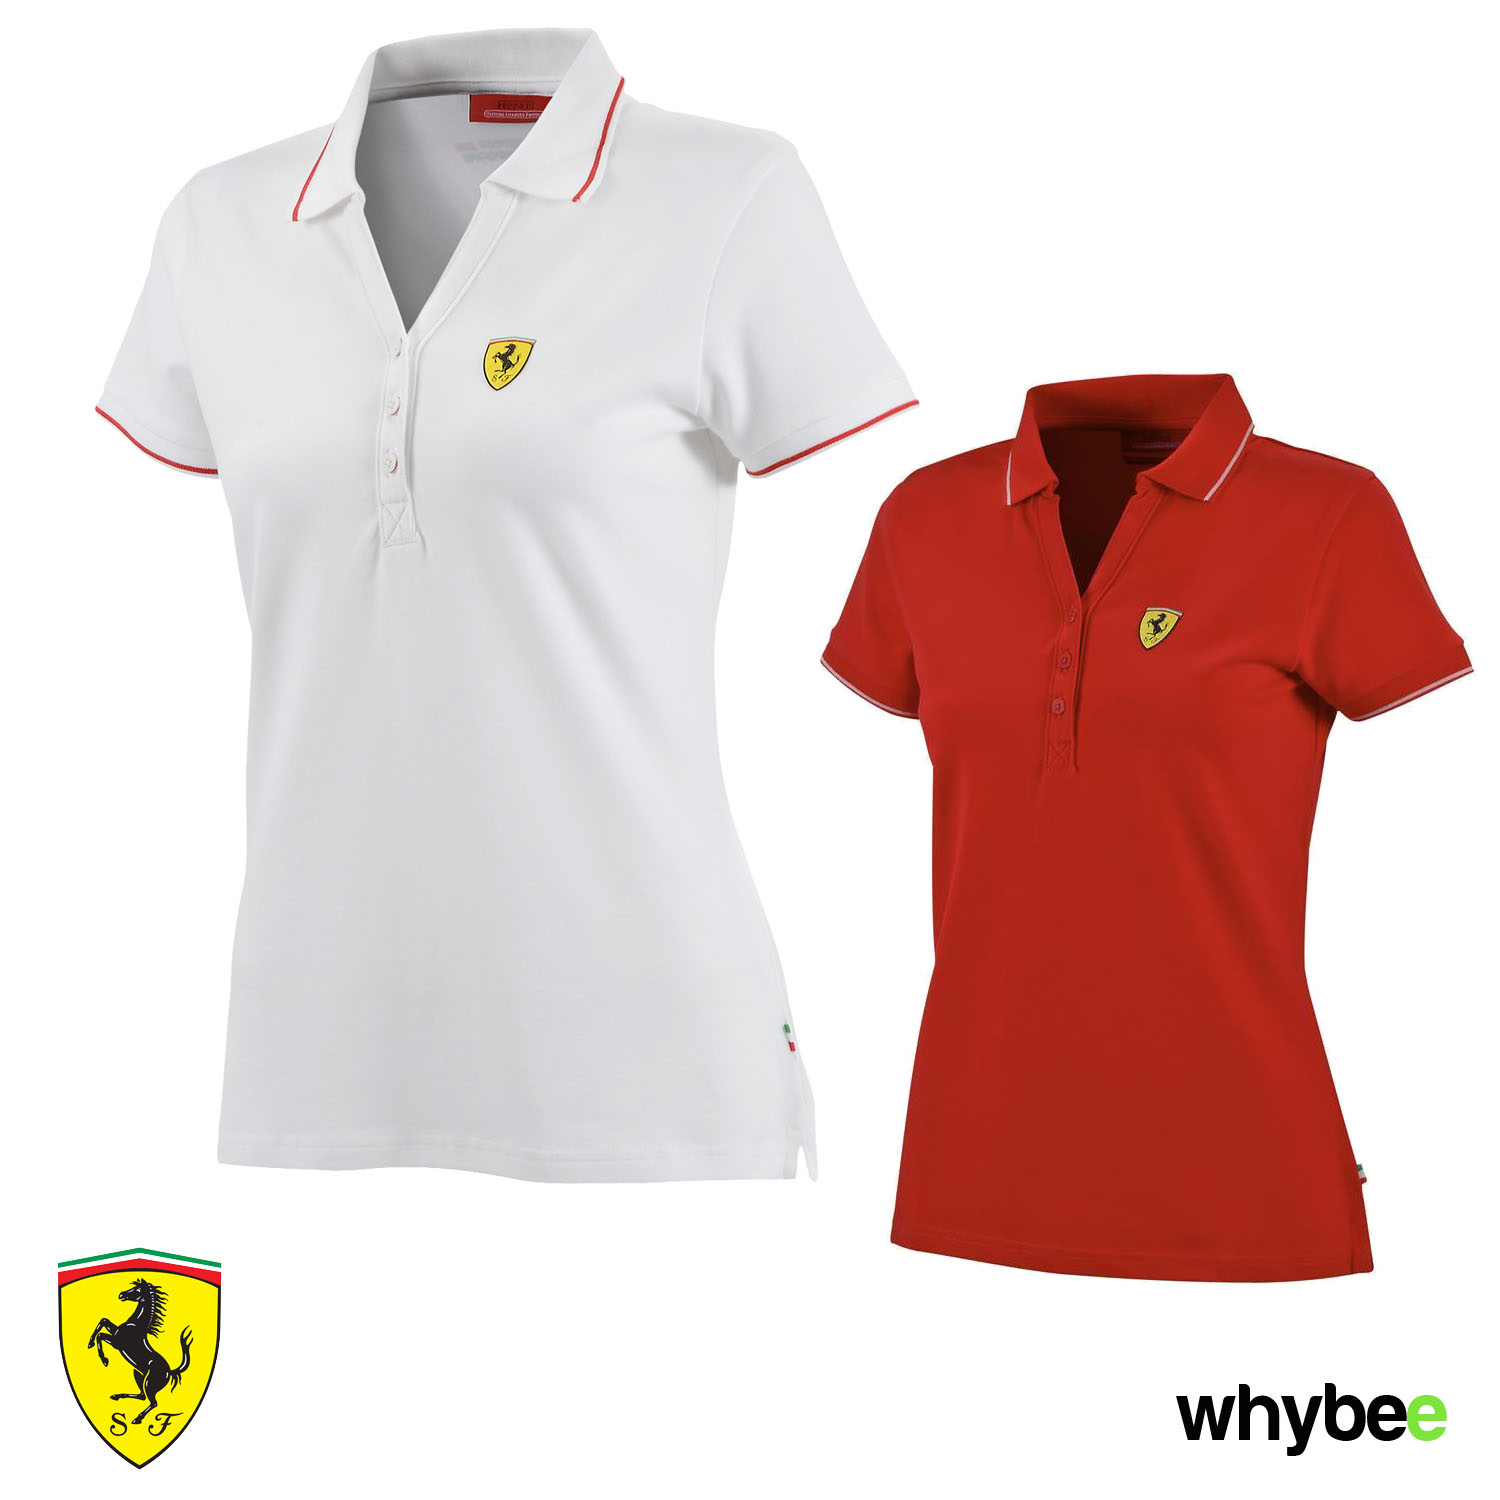 4a9f1925 ... low cost team polo shirt womens dcd61 87c56 low cost team polo shirt  womens dcd61 87c56; czech polo ralph lauren ...